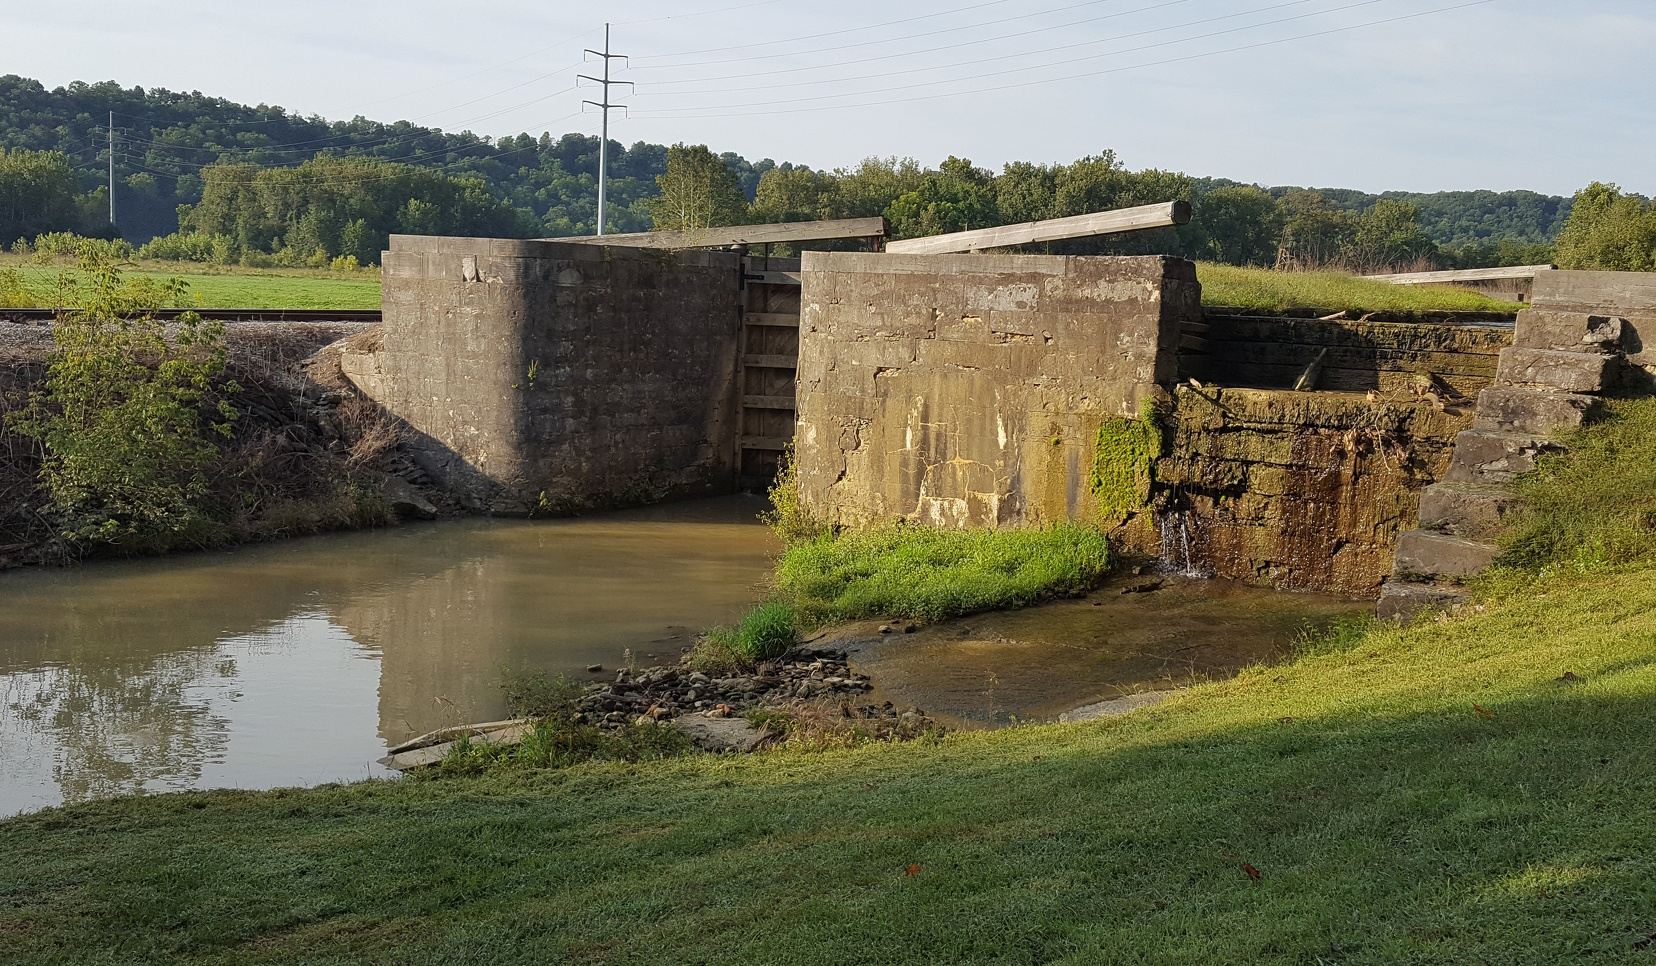 Whitewater Canal in Indiana